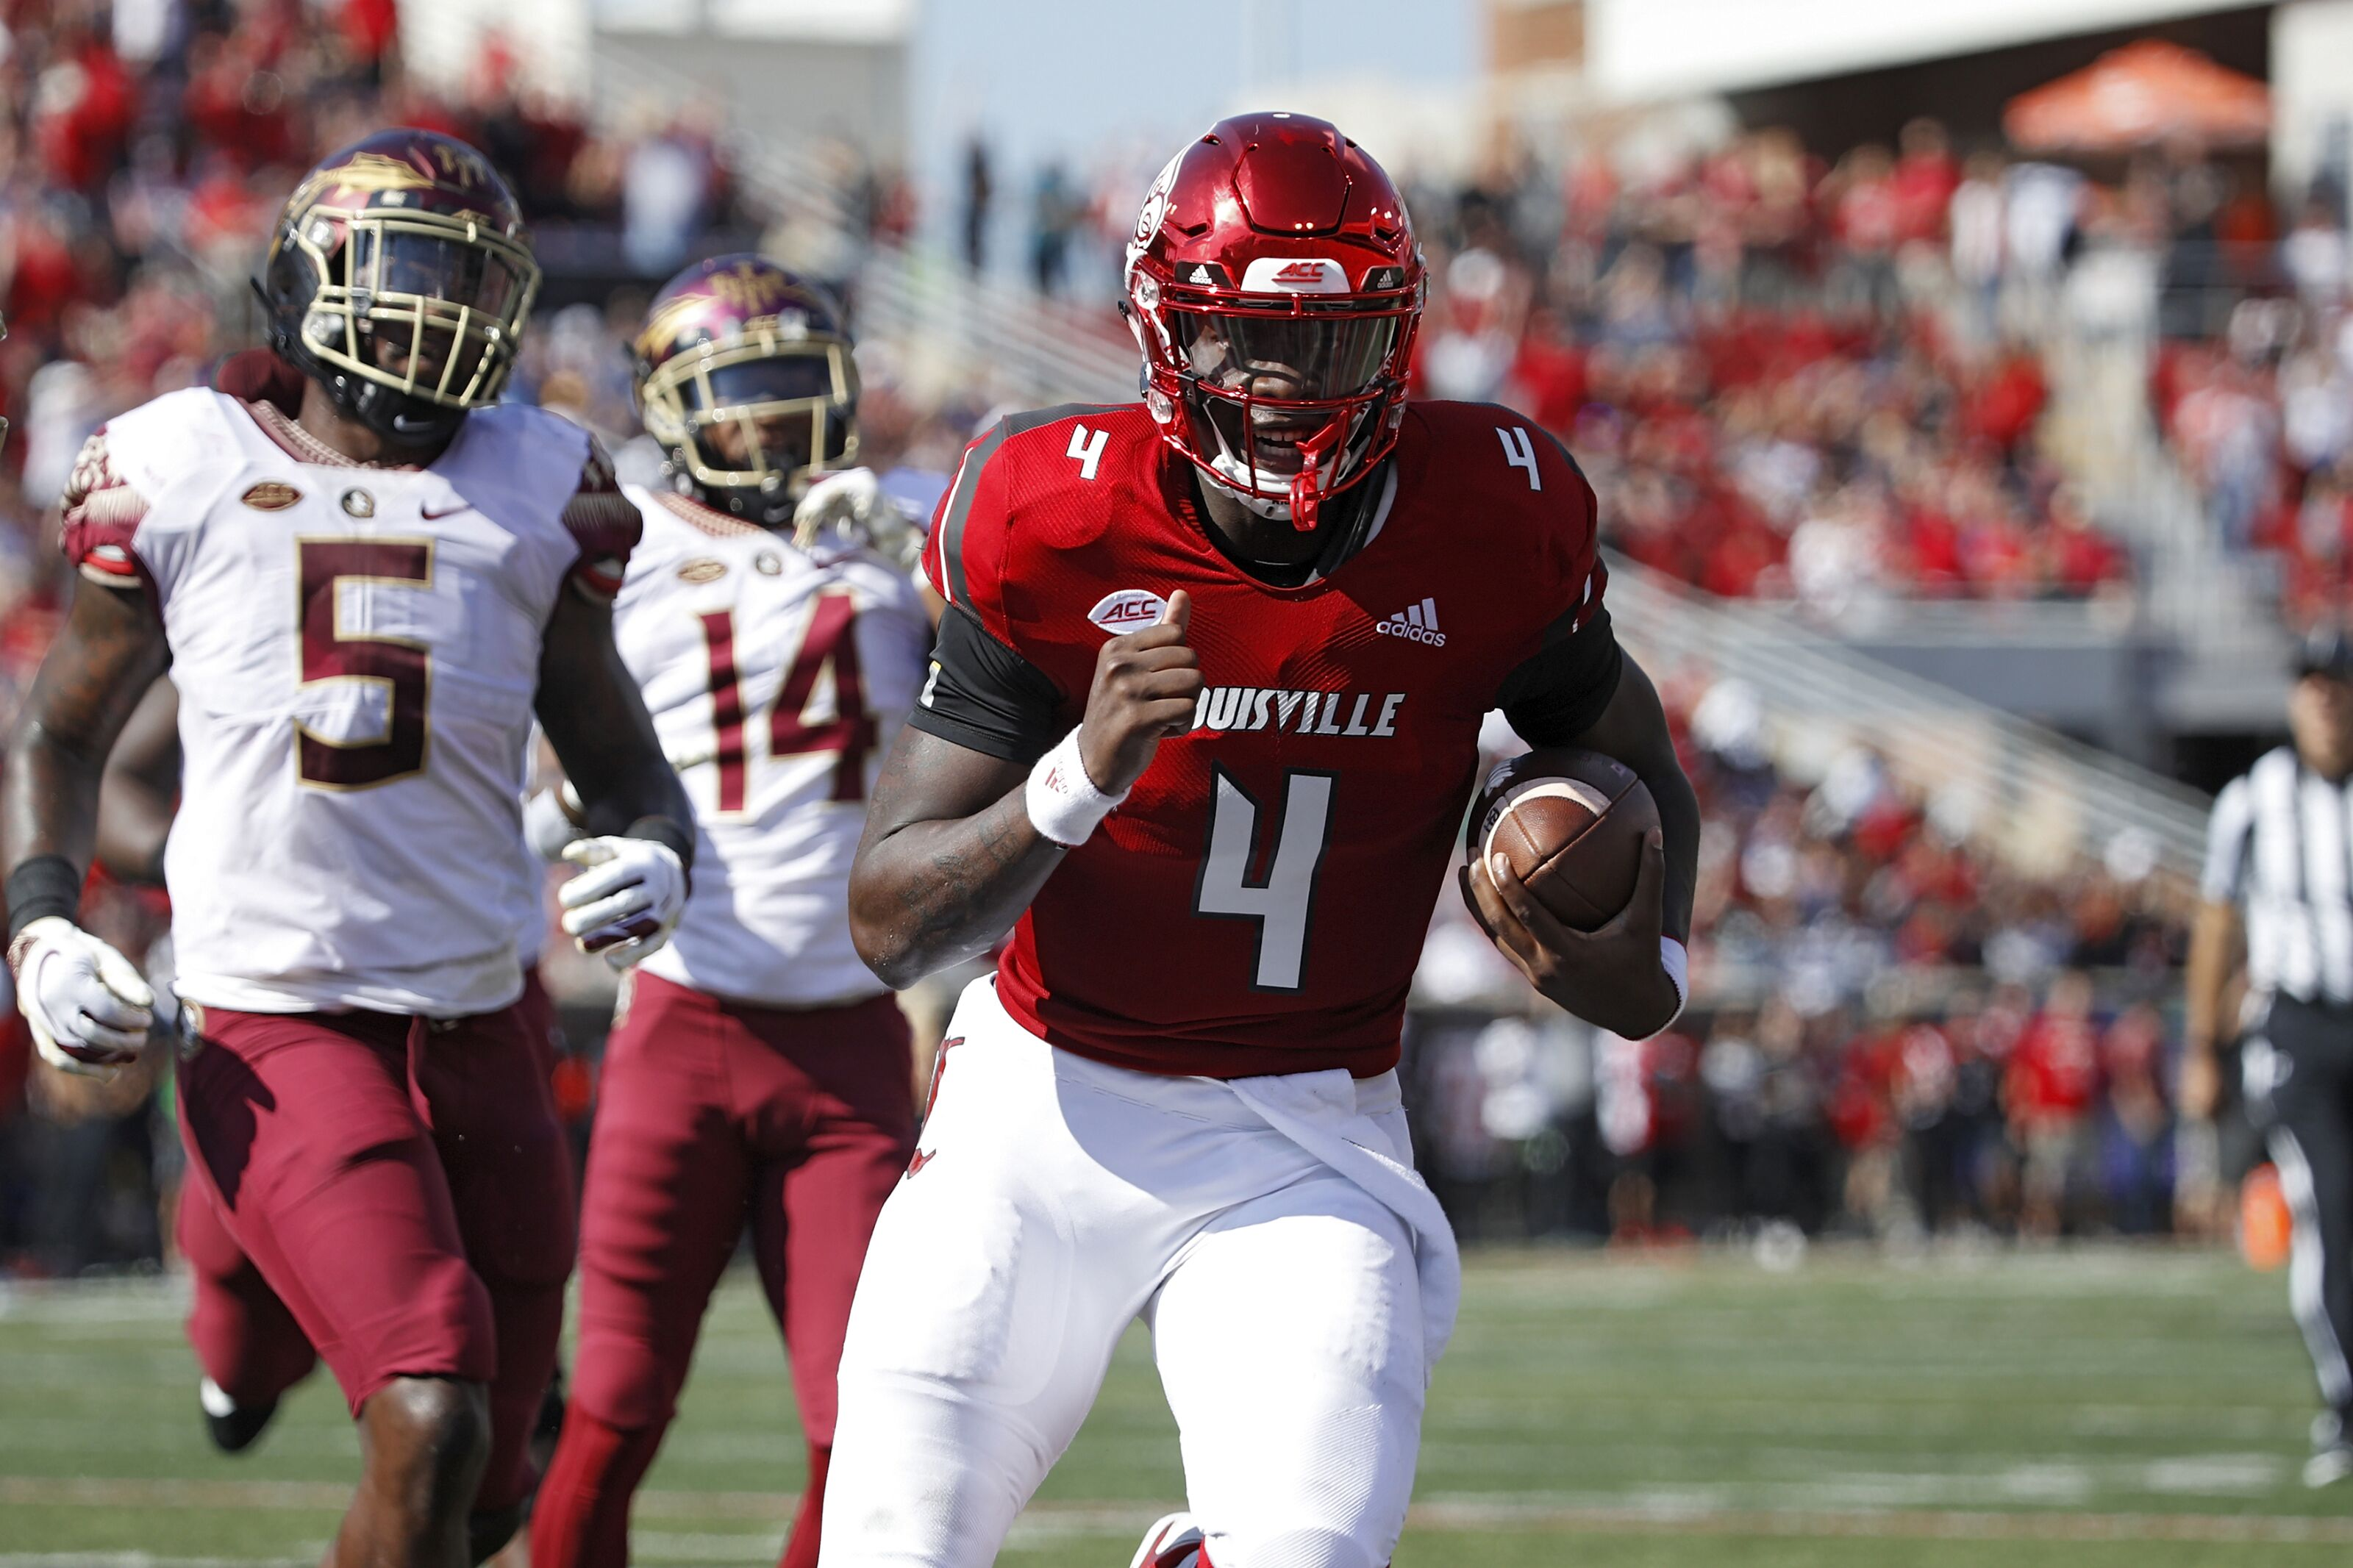 Louisville football: 3 reasons why the Cards will beat FSU